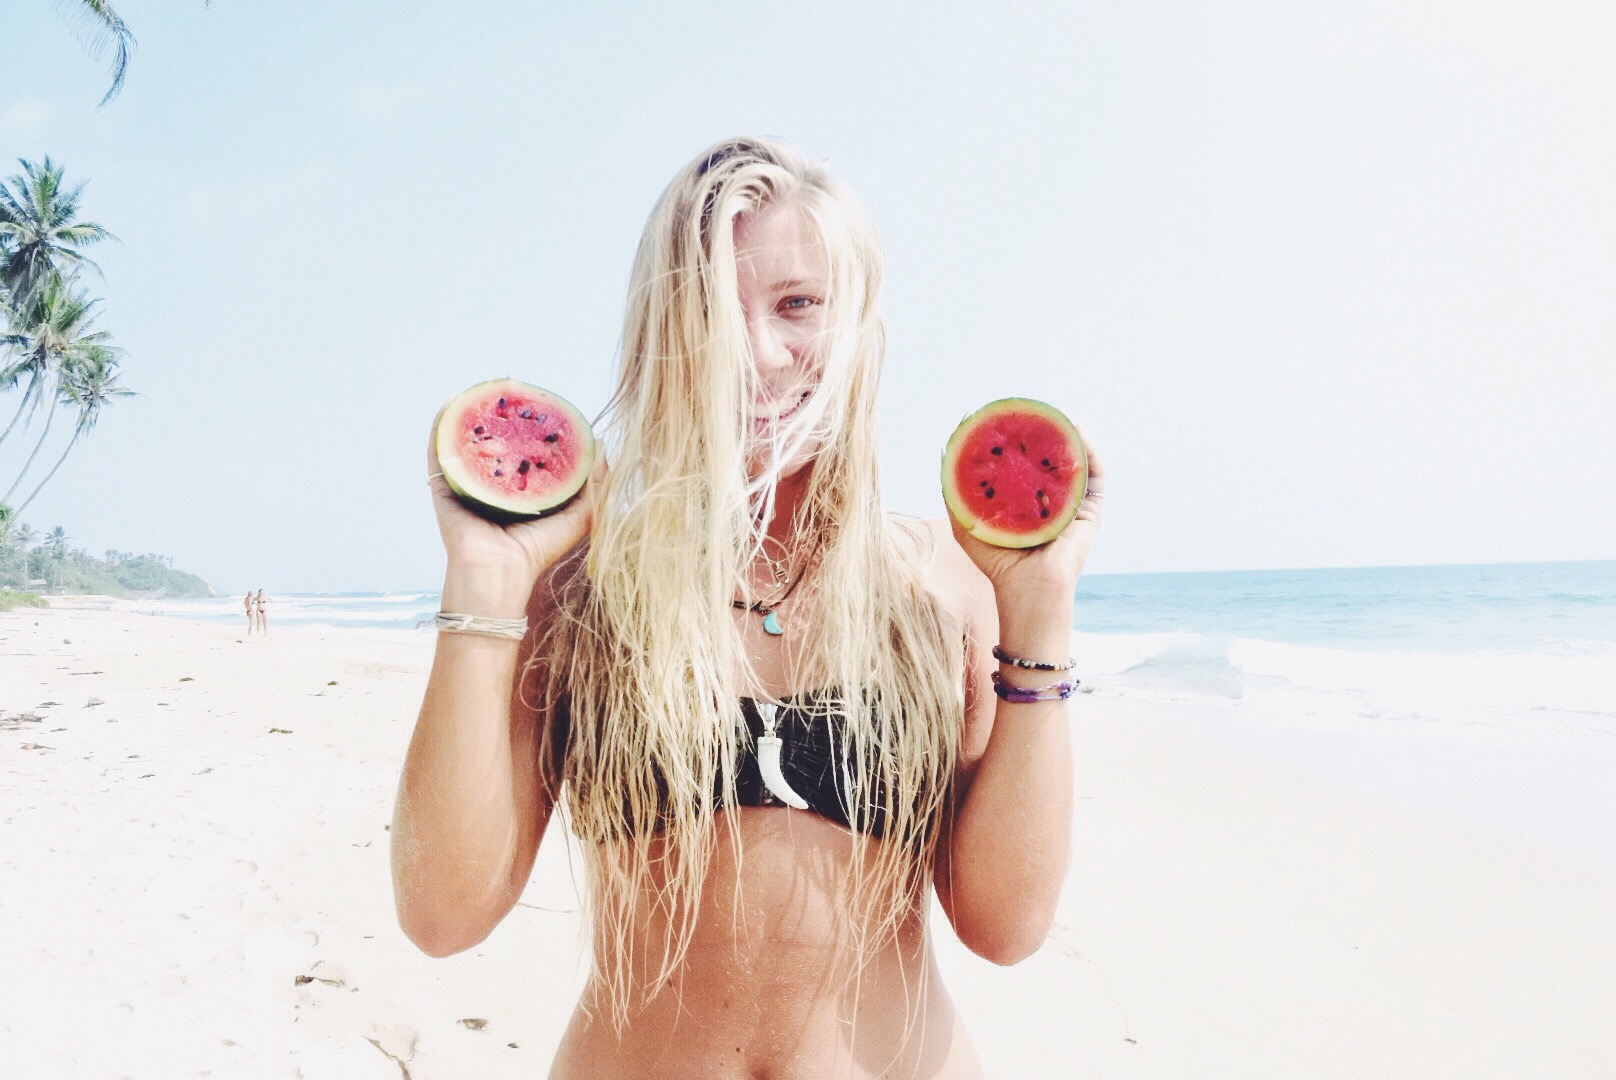 Surf Girl Watermelon    Unique Bohemian Beach Items from around the world   Salty Boho Boutique   www.saltyboho.com